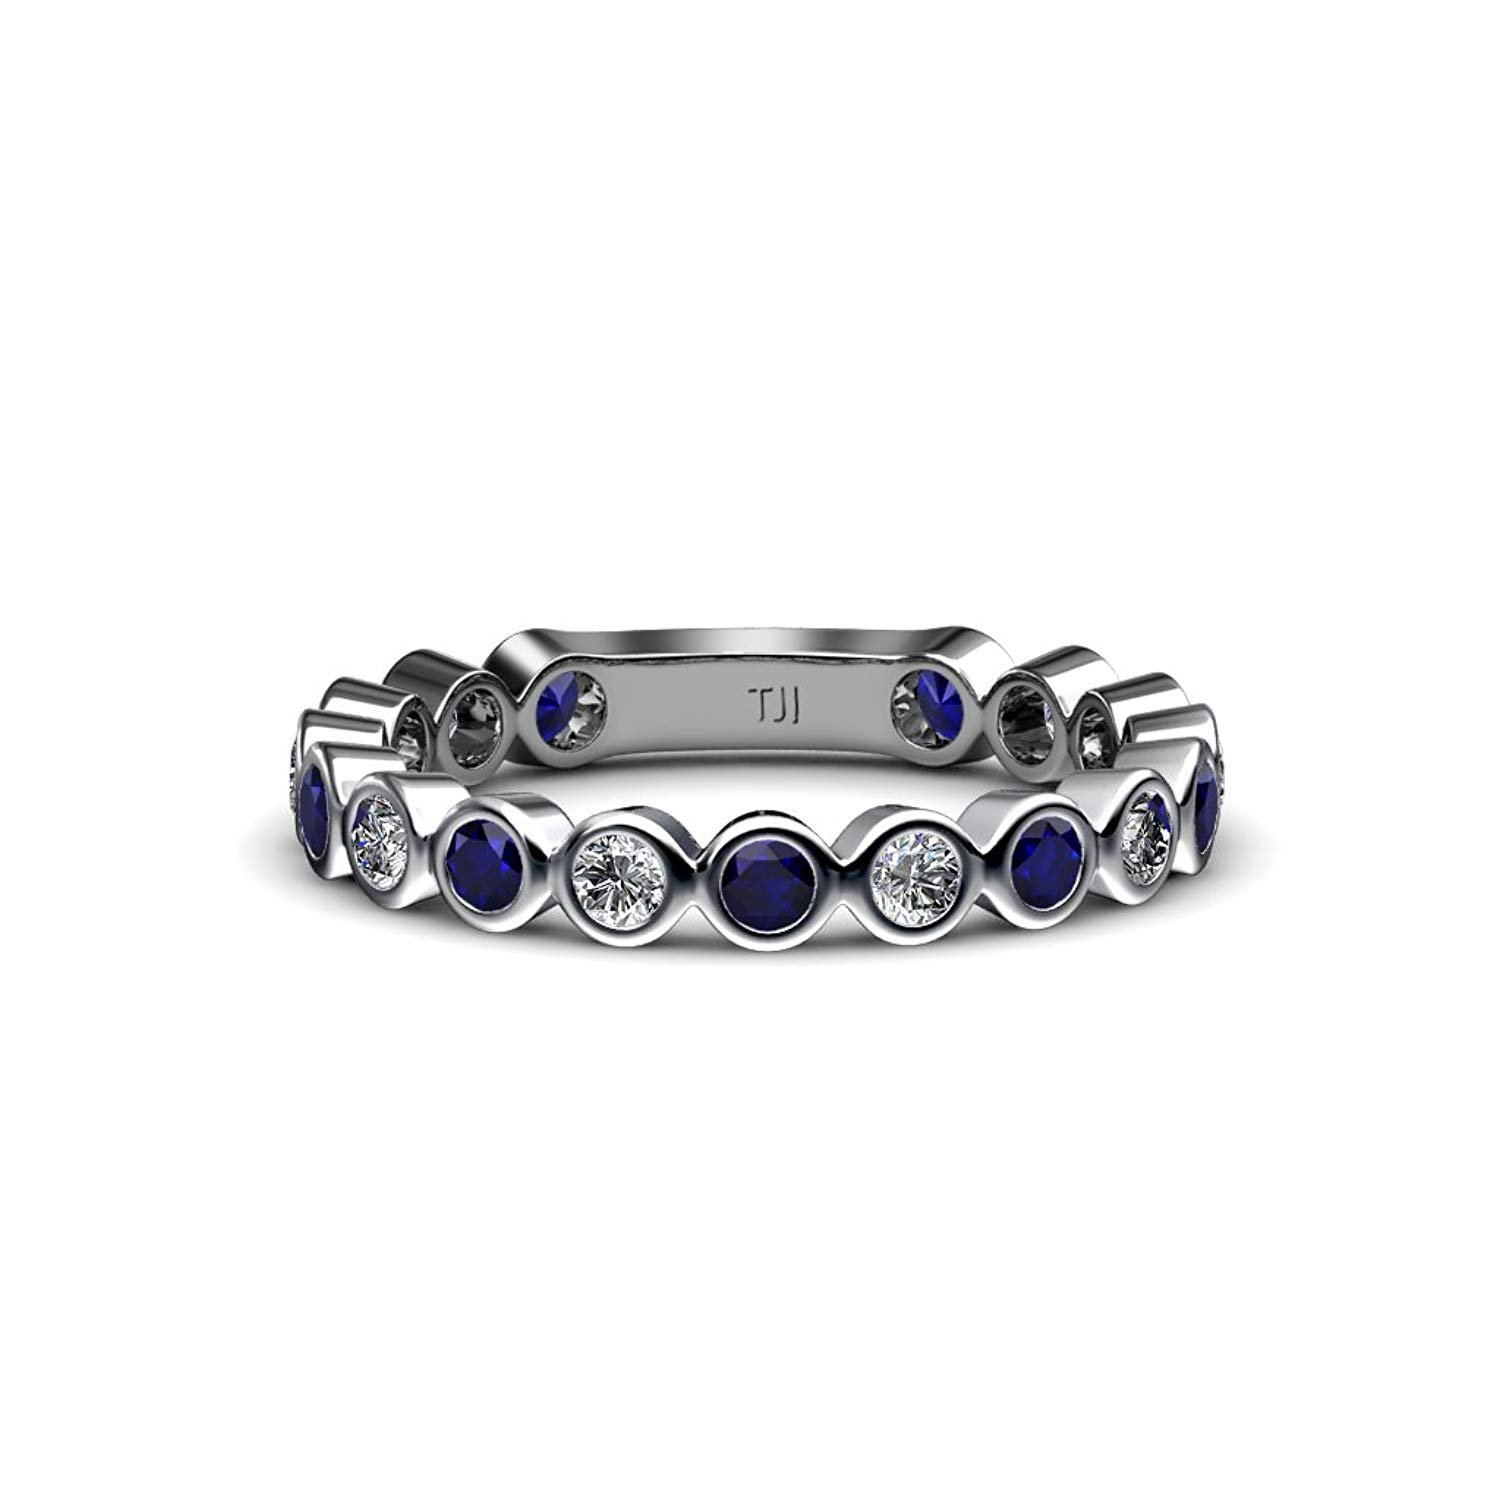 Blue Sapphire and Diamond 2.3mm Bezel Set Eternity Band 0.79 Carat tw in 14K White Gold.size 8.0 by TriJewels